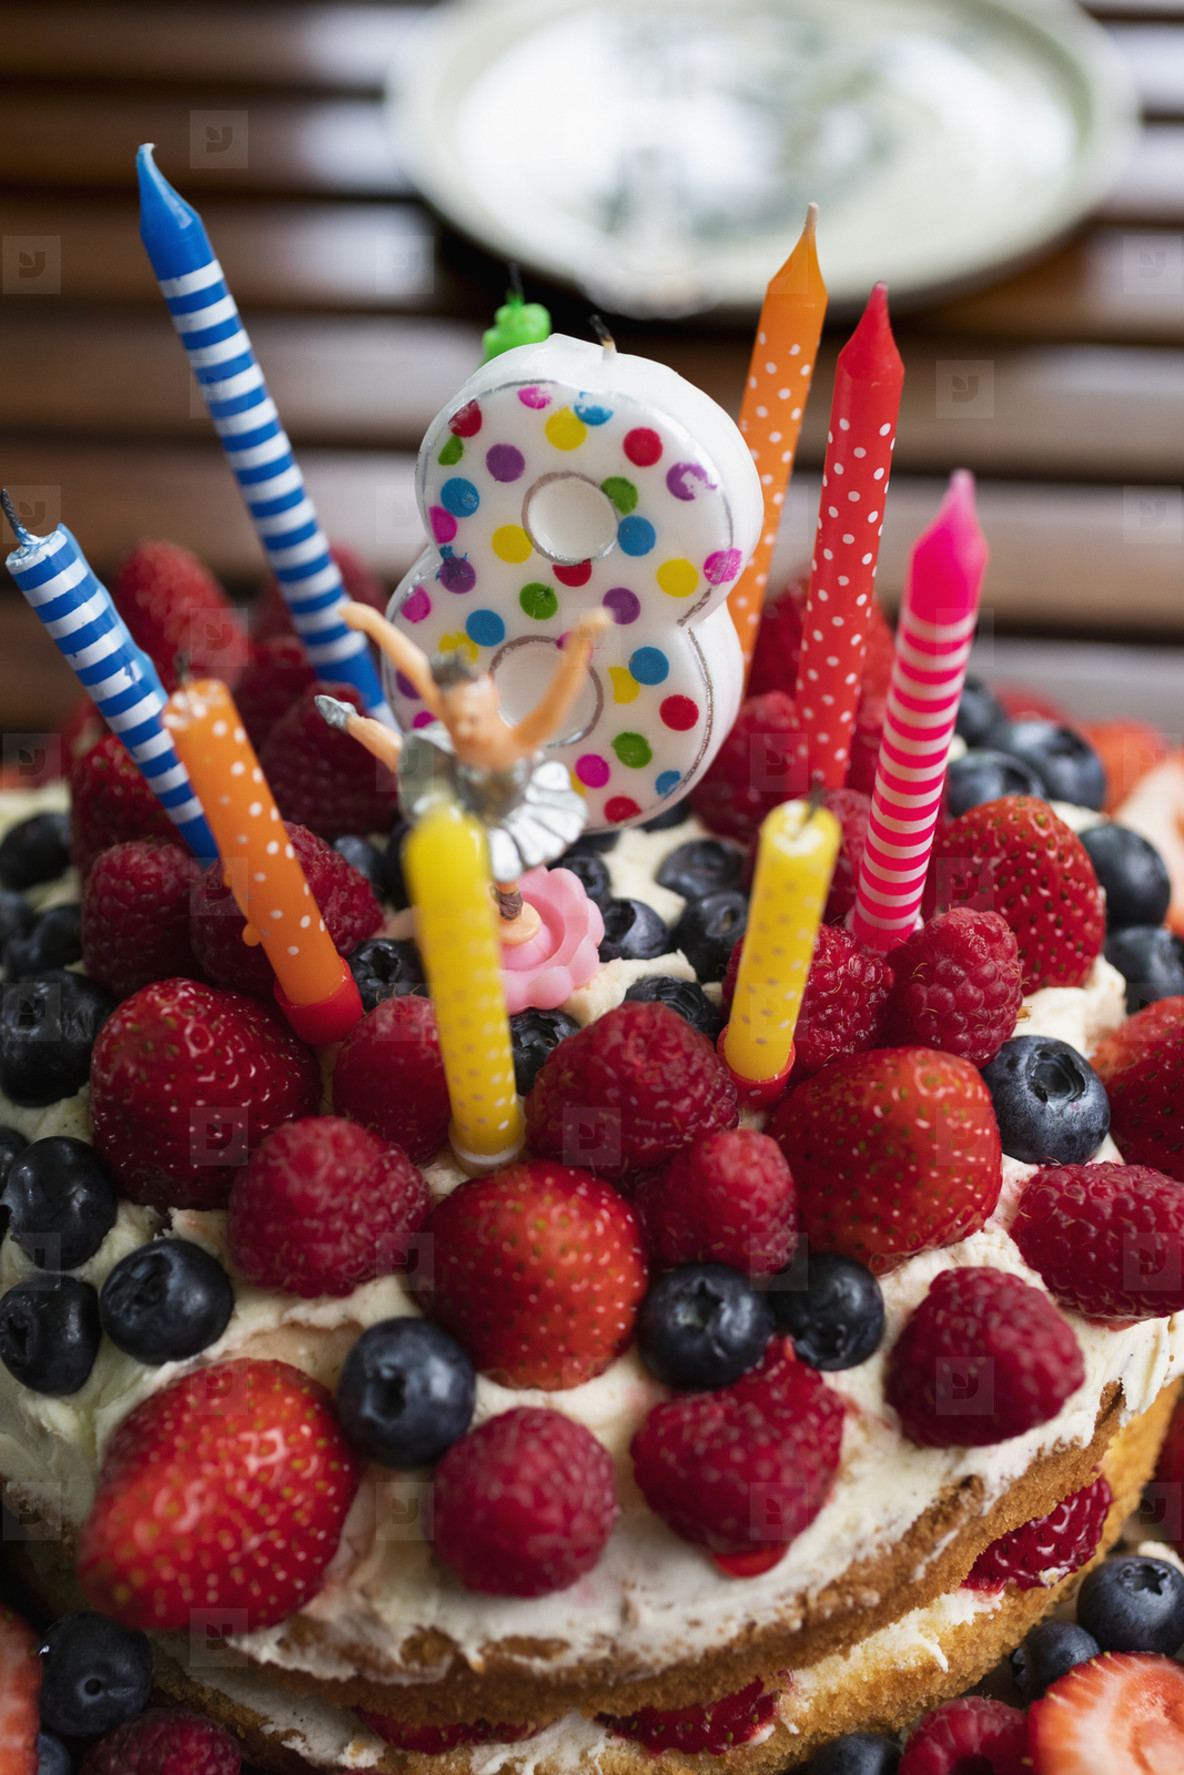 Vibrant candles and number 8 candle on fruit birthday cake